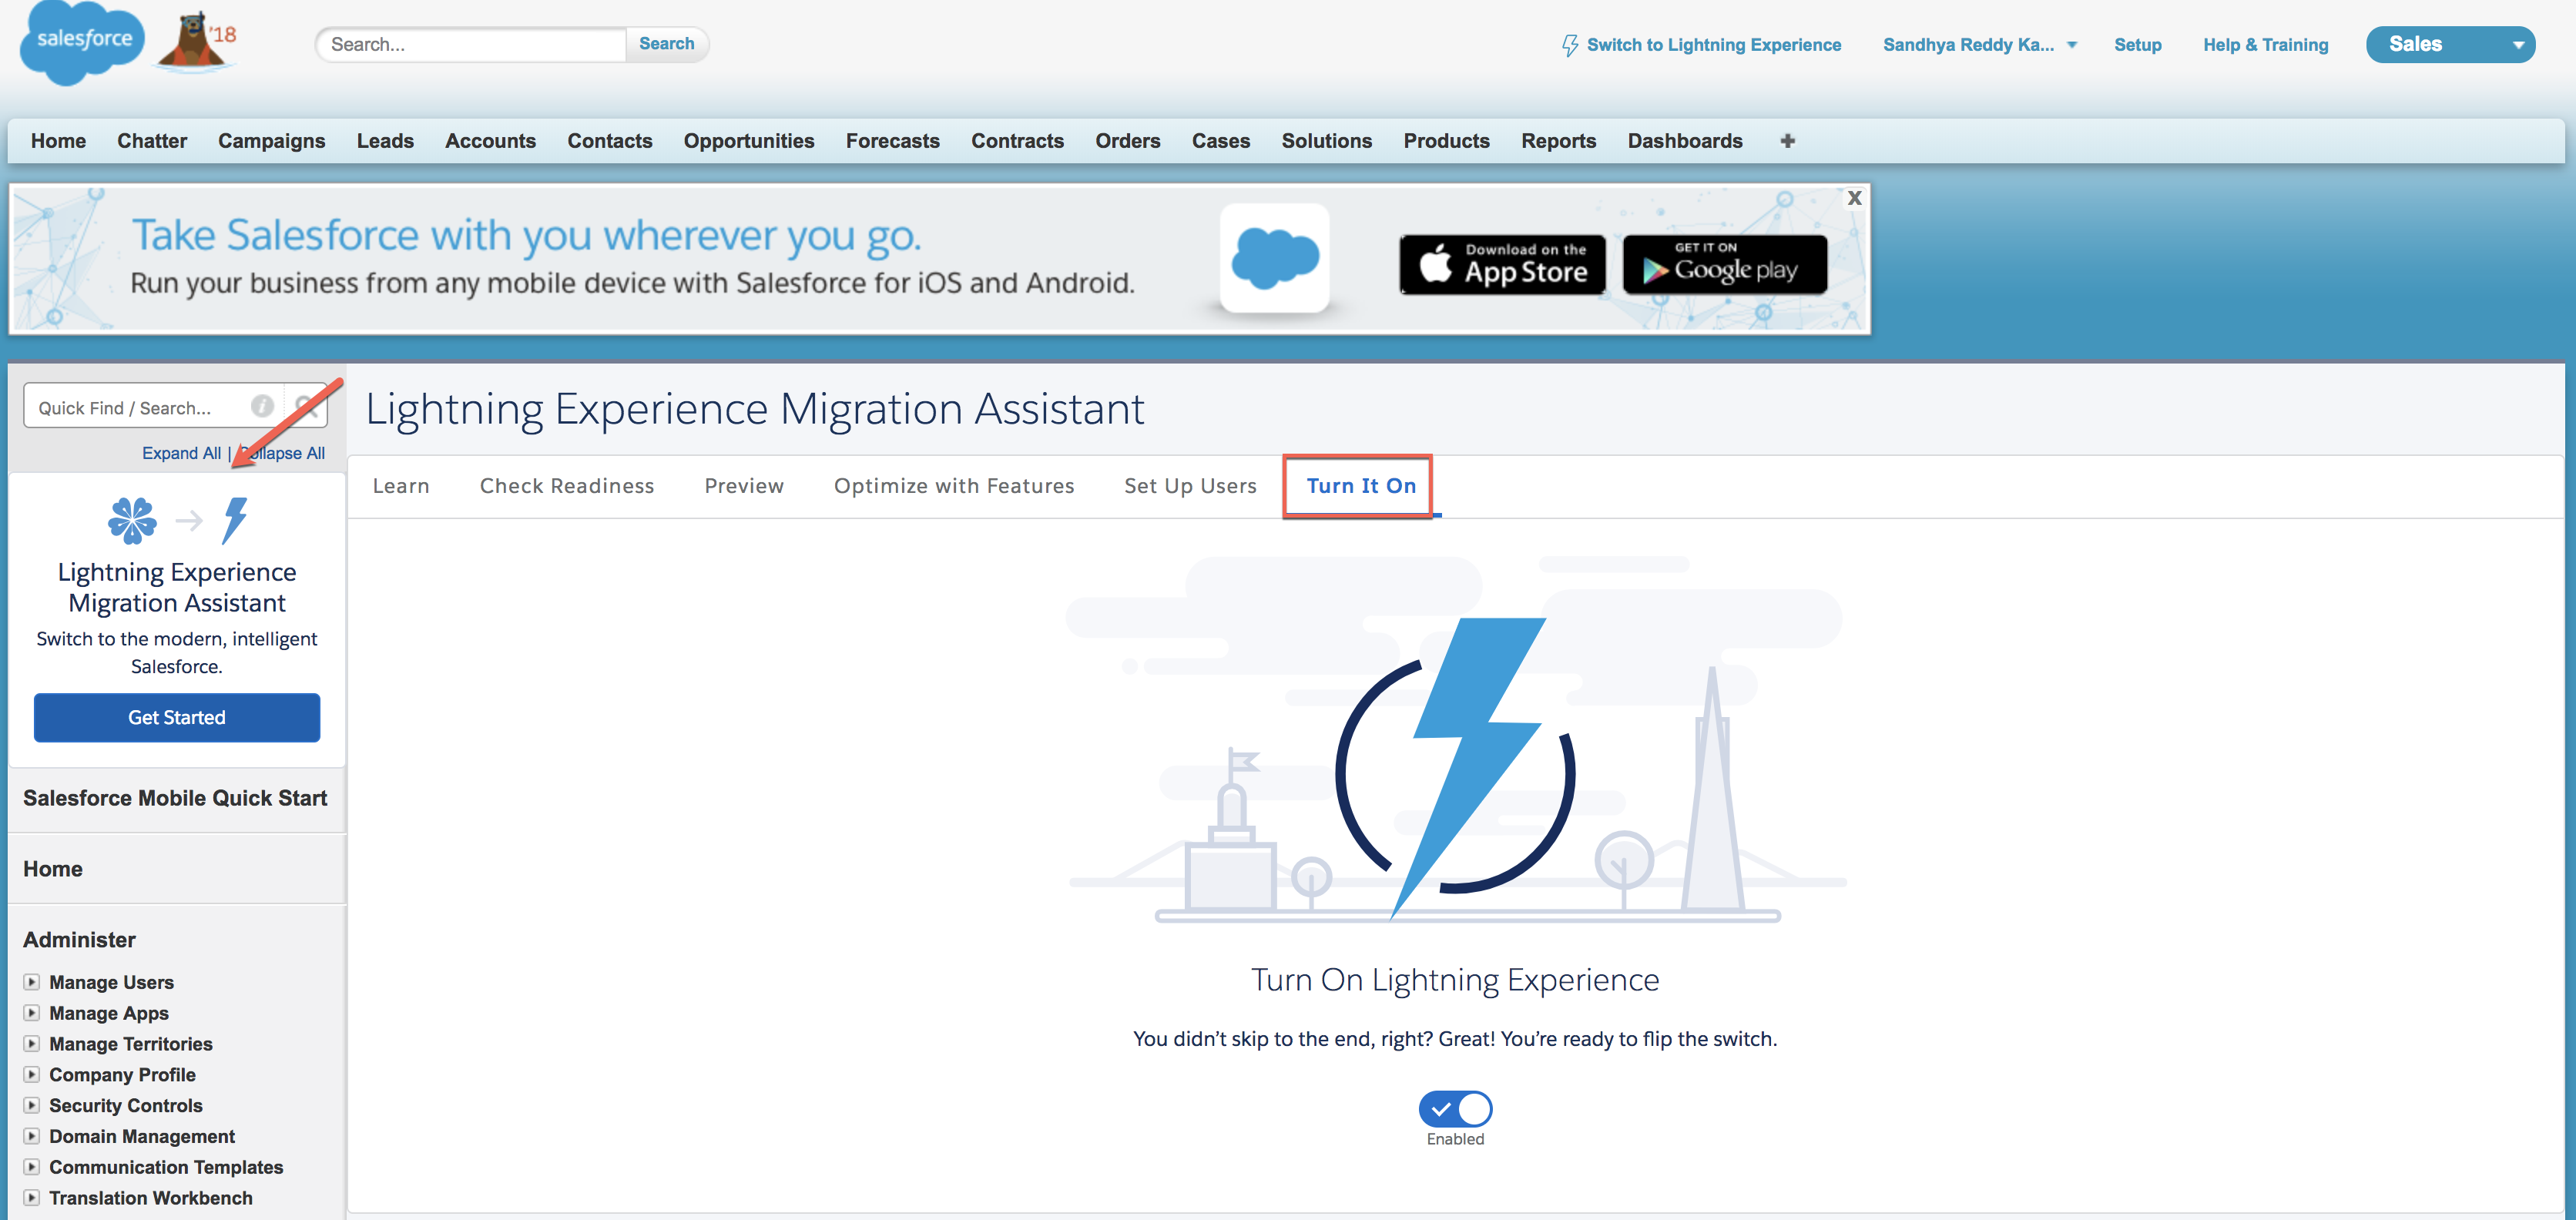 Admin enabling Lightning Experience in their org